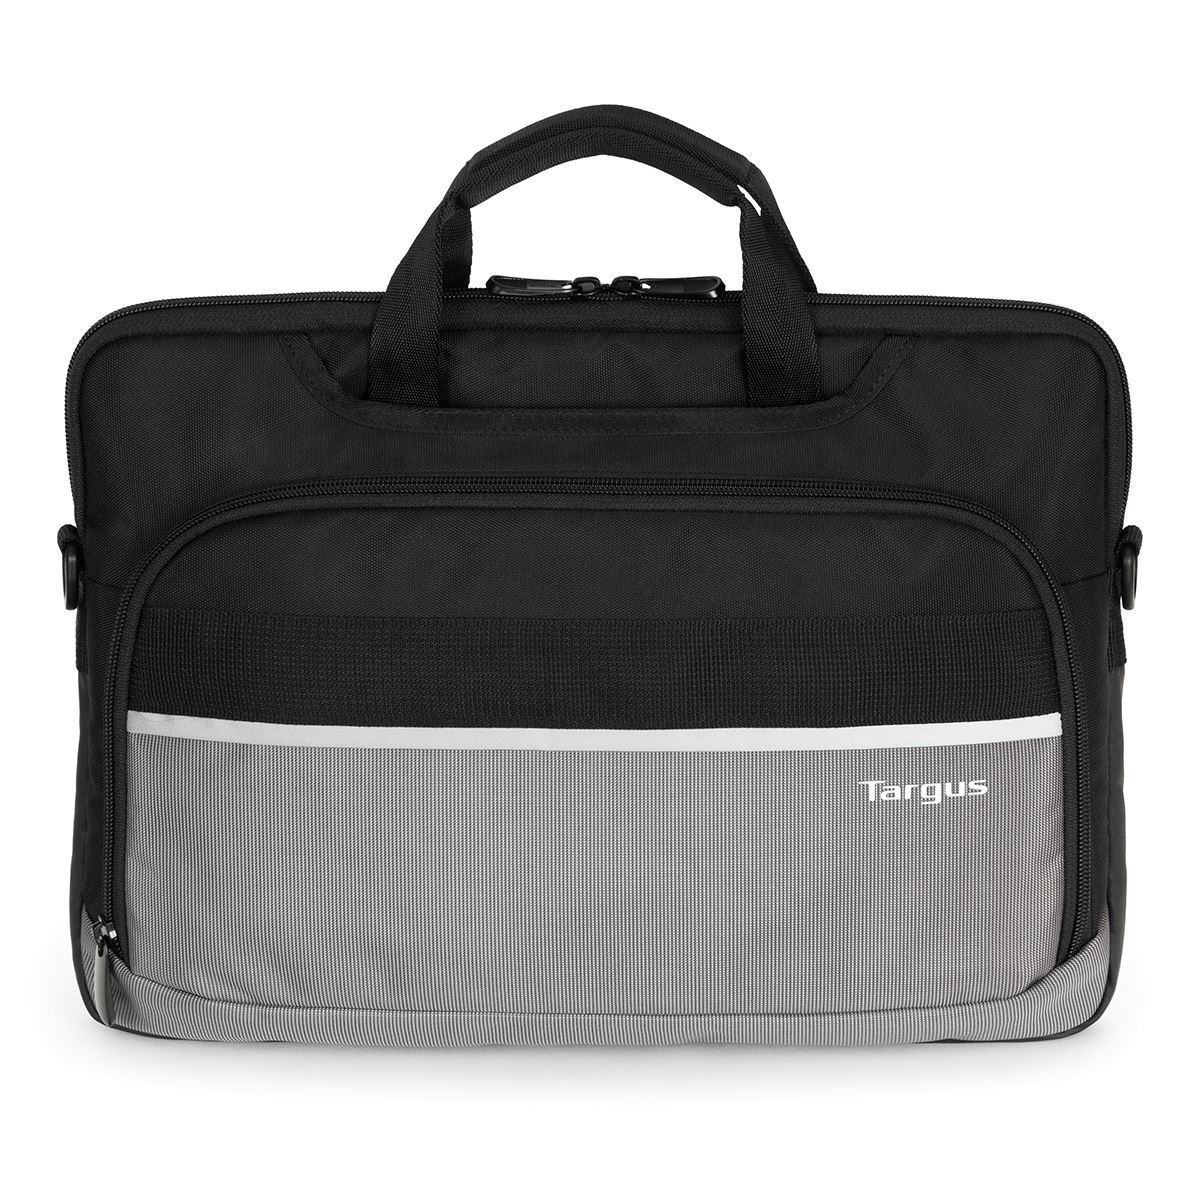 11.6 Shoulder Laptop Bag Ted010eu - WC01